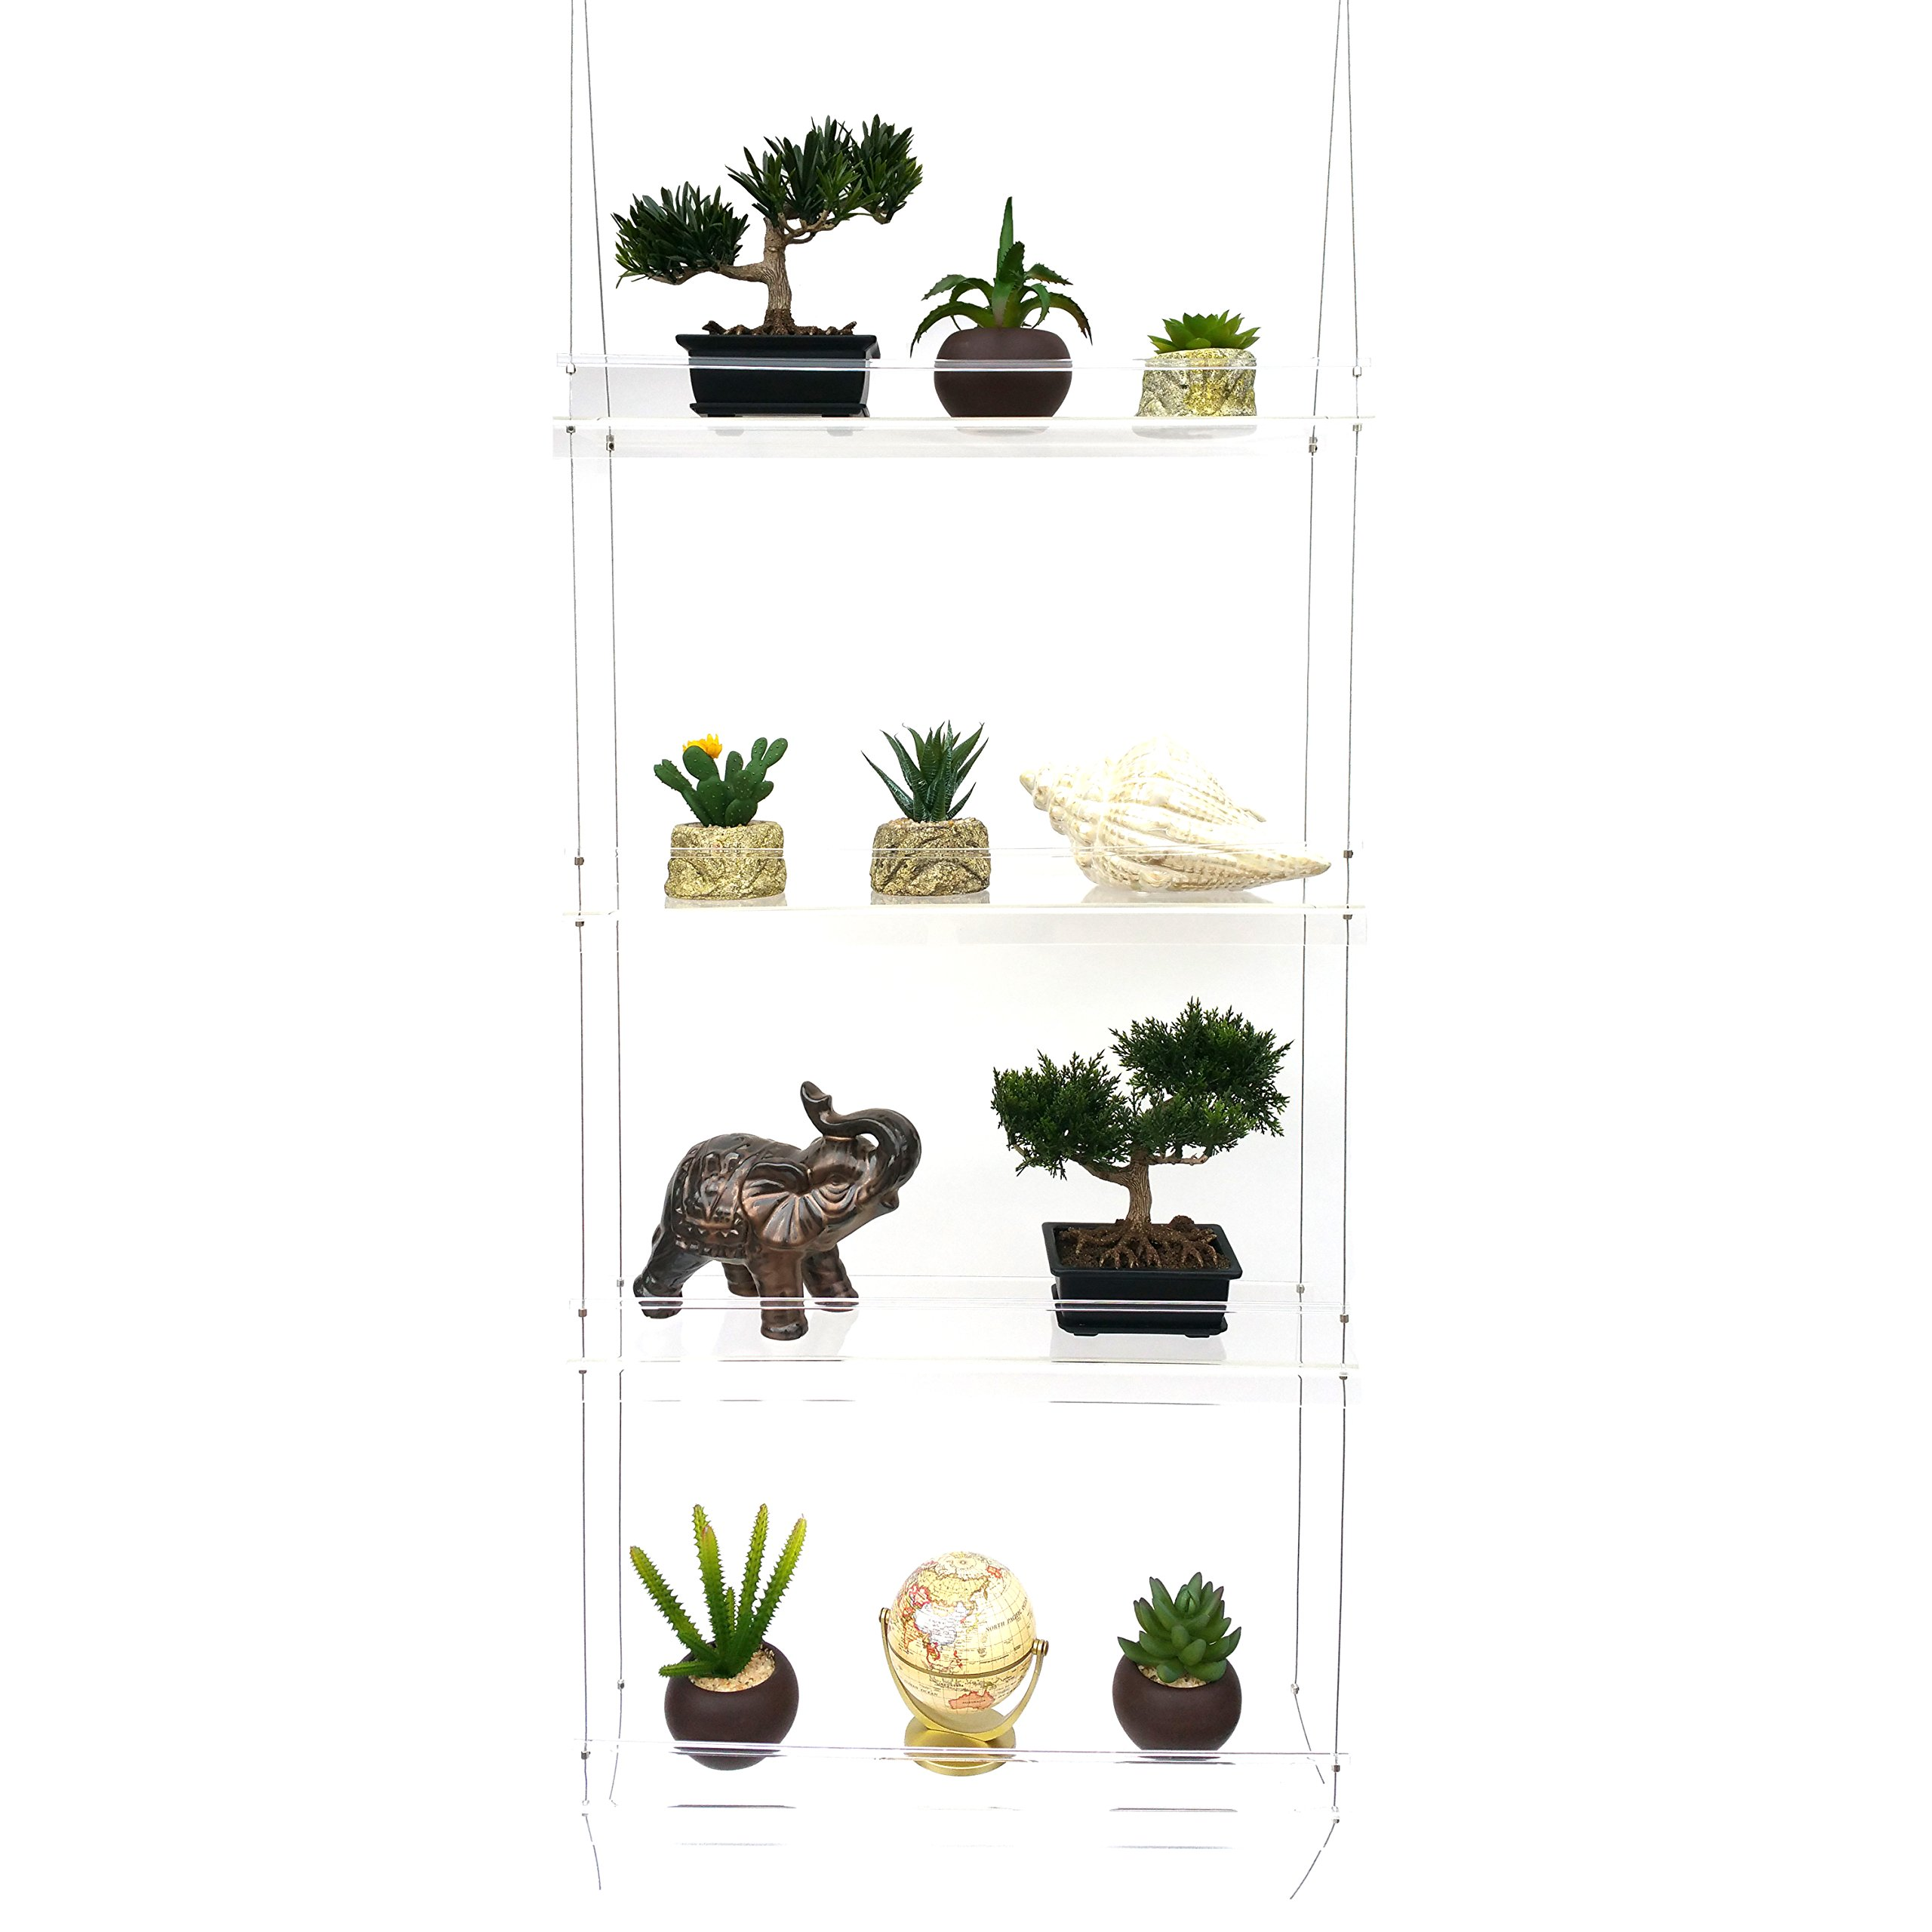 LIMITED TIME LOW PRICE FOR FIRST TIME SELLING ON AMAZON|Sunshine Innovations Indoor Window Plant Shelves|Durable & Lightweight Acrylic with Adjustable Height Shelves|For Plants, Herbs, Flowers & Decor